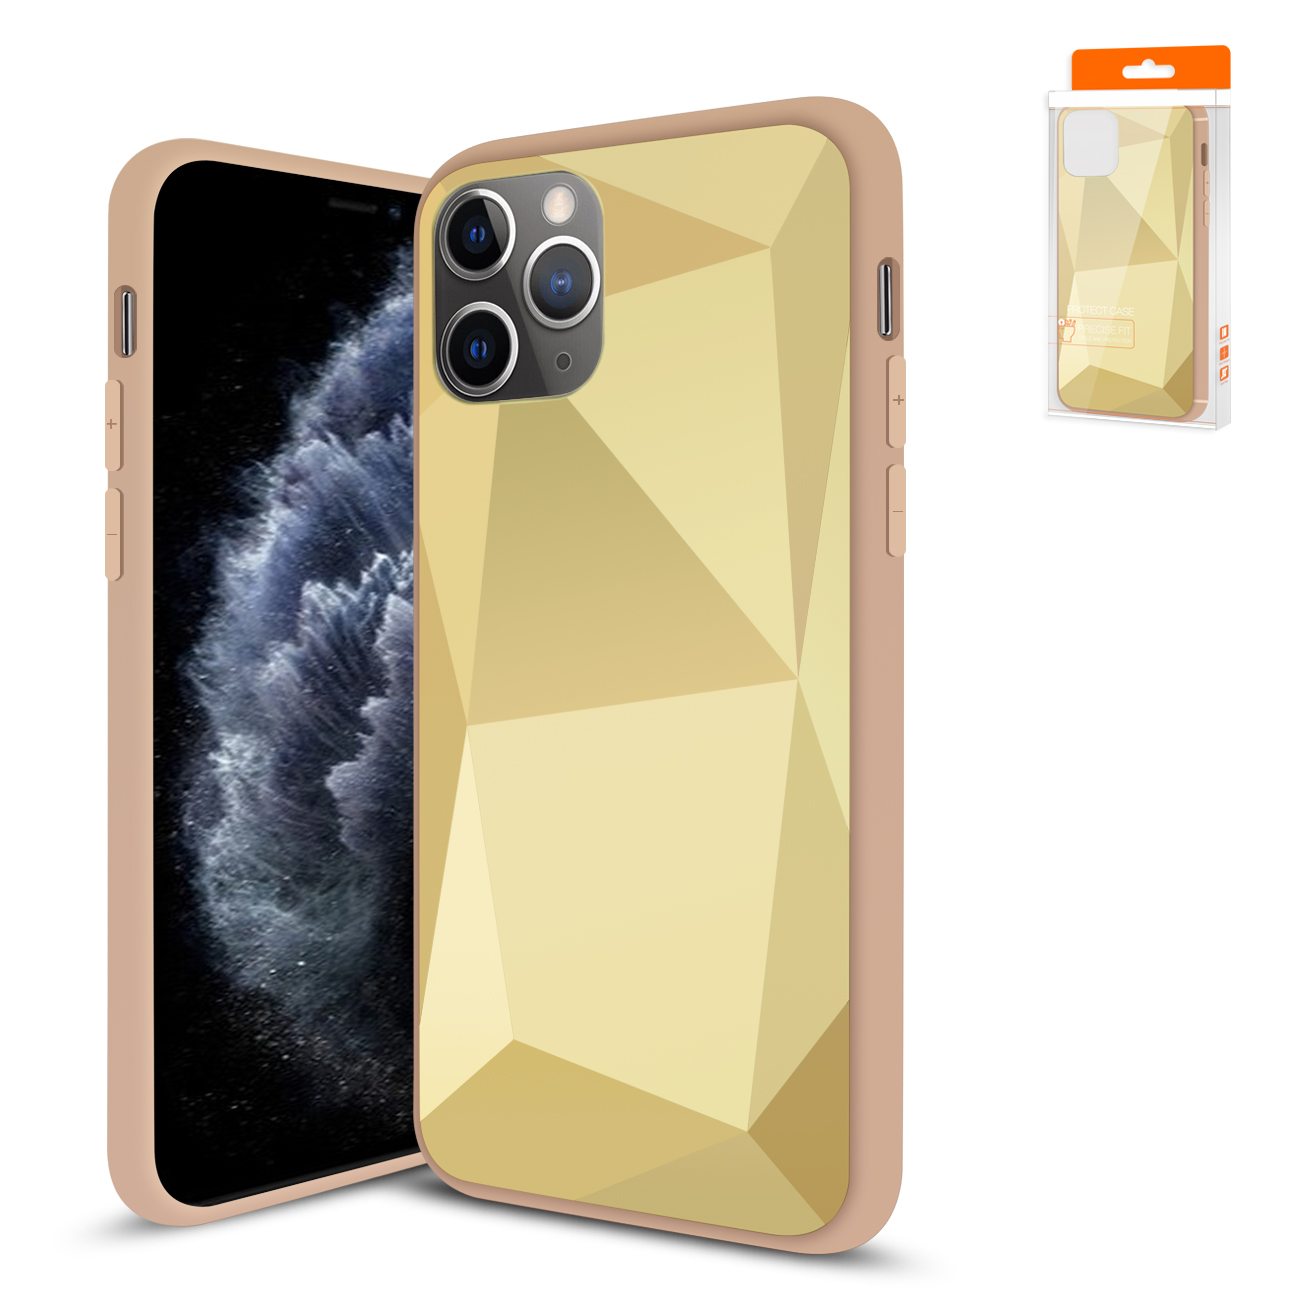 Apple iPhone 11 Pro Apple Diamond Cases In Gold